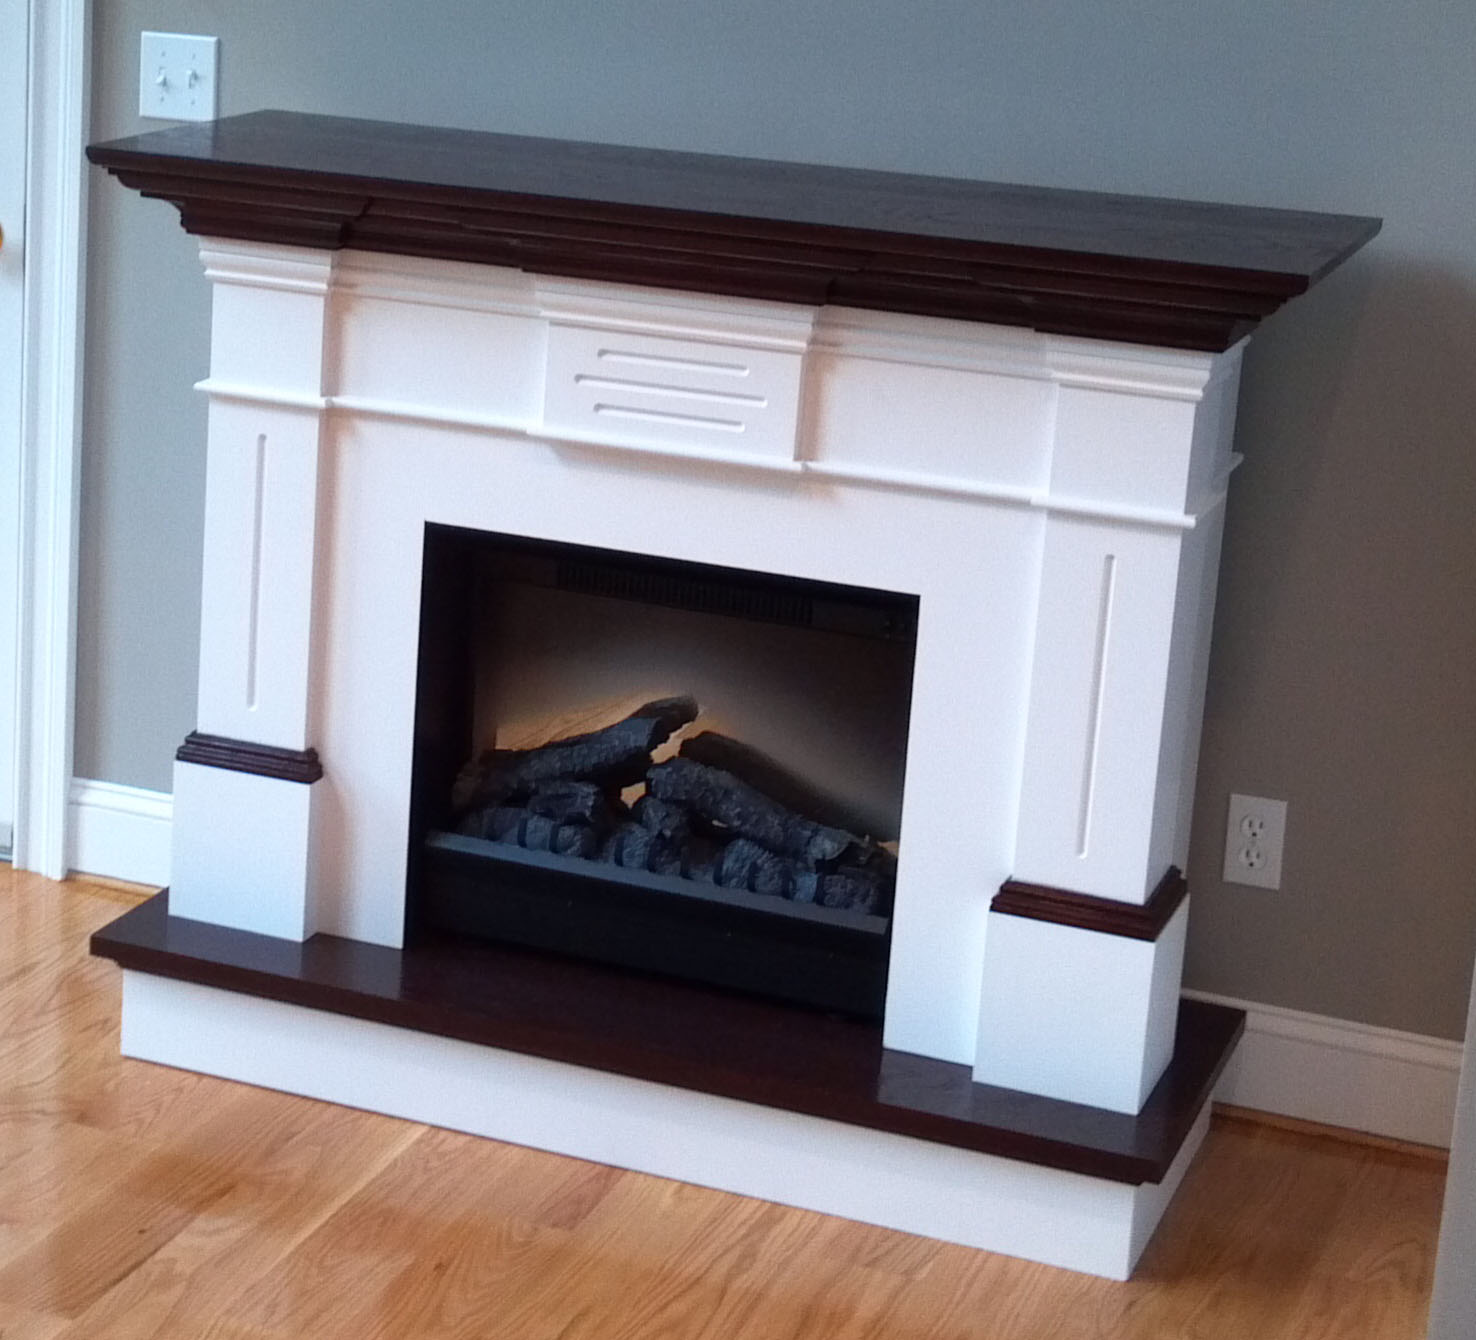 Best Lowes Fireplace Mantel for Warm Up Your Space Room Ideas: Lowes Fireplace Mantel | Inexpensive Fireplace Mantels | Mantelpieces Fireplaces